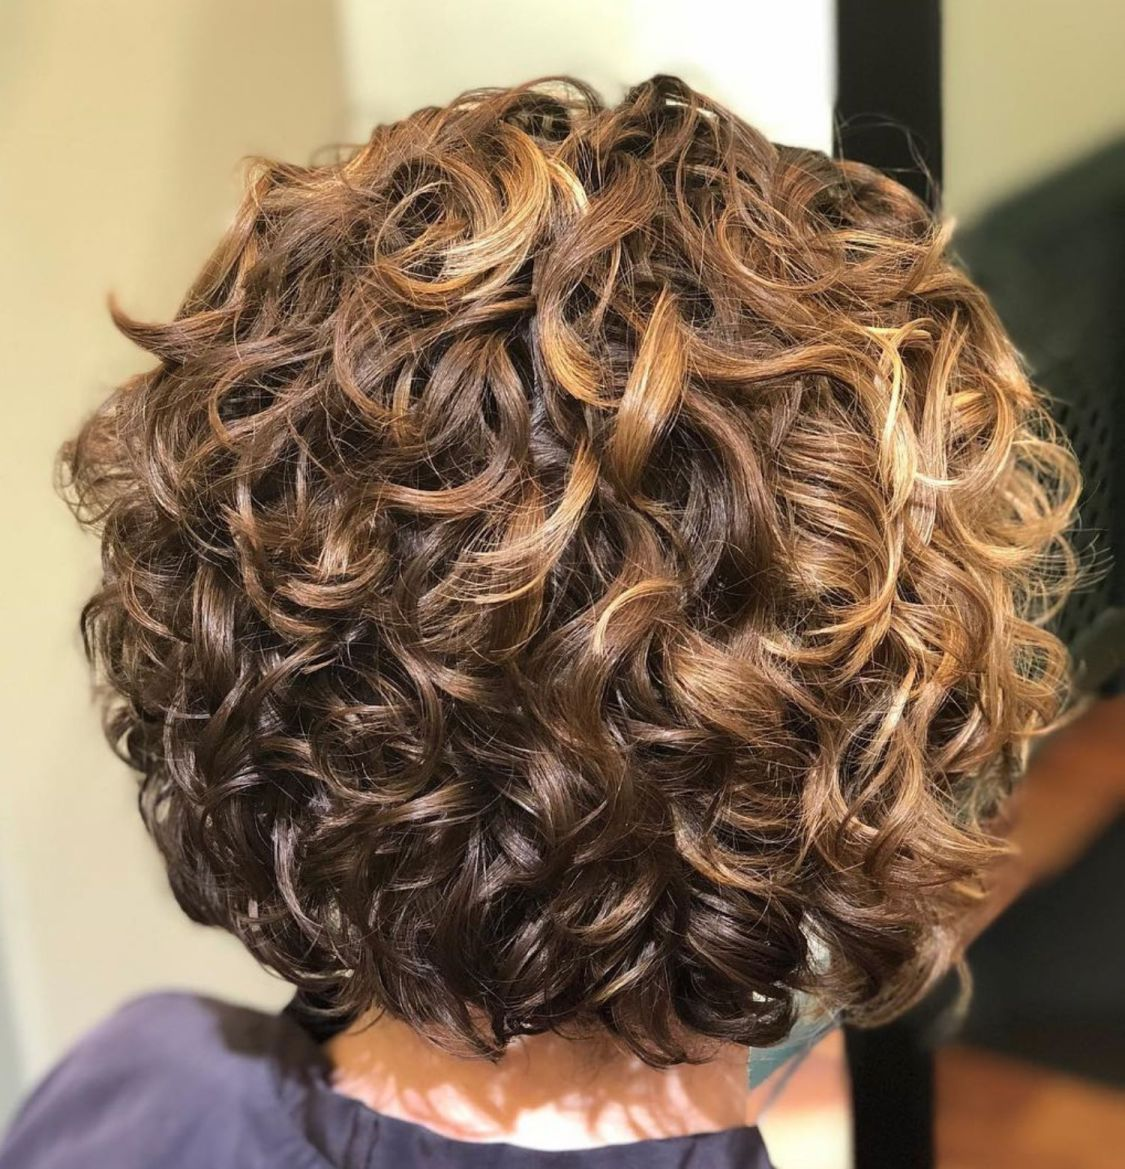 65 Different Versions Of Curly Bob Hairstyle 65 Different Versions of Curly Bob Hairstyle Bob Hairstyles curly bob hairstyles